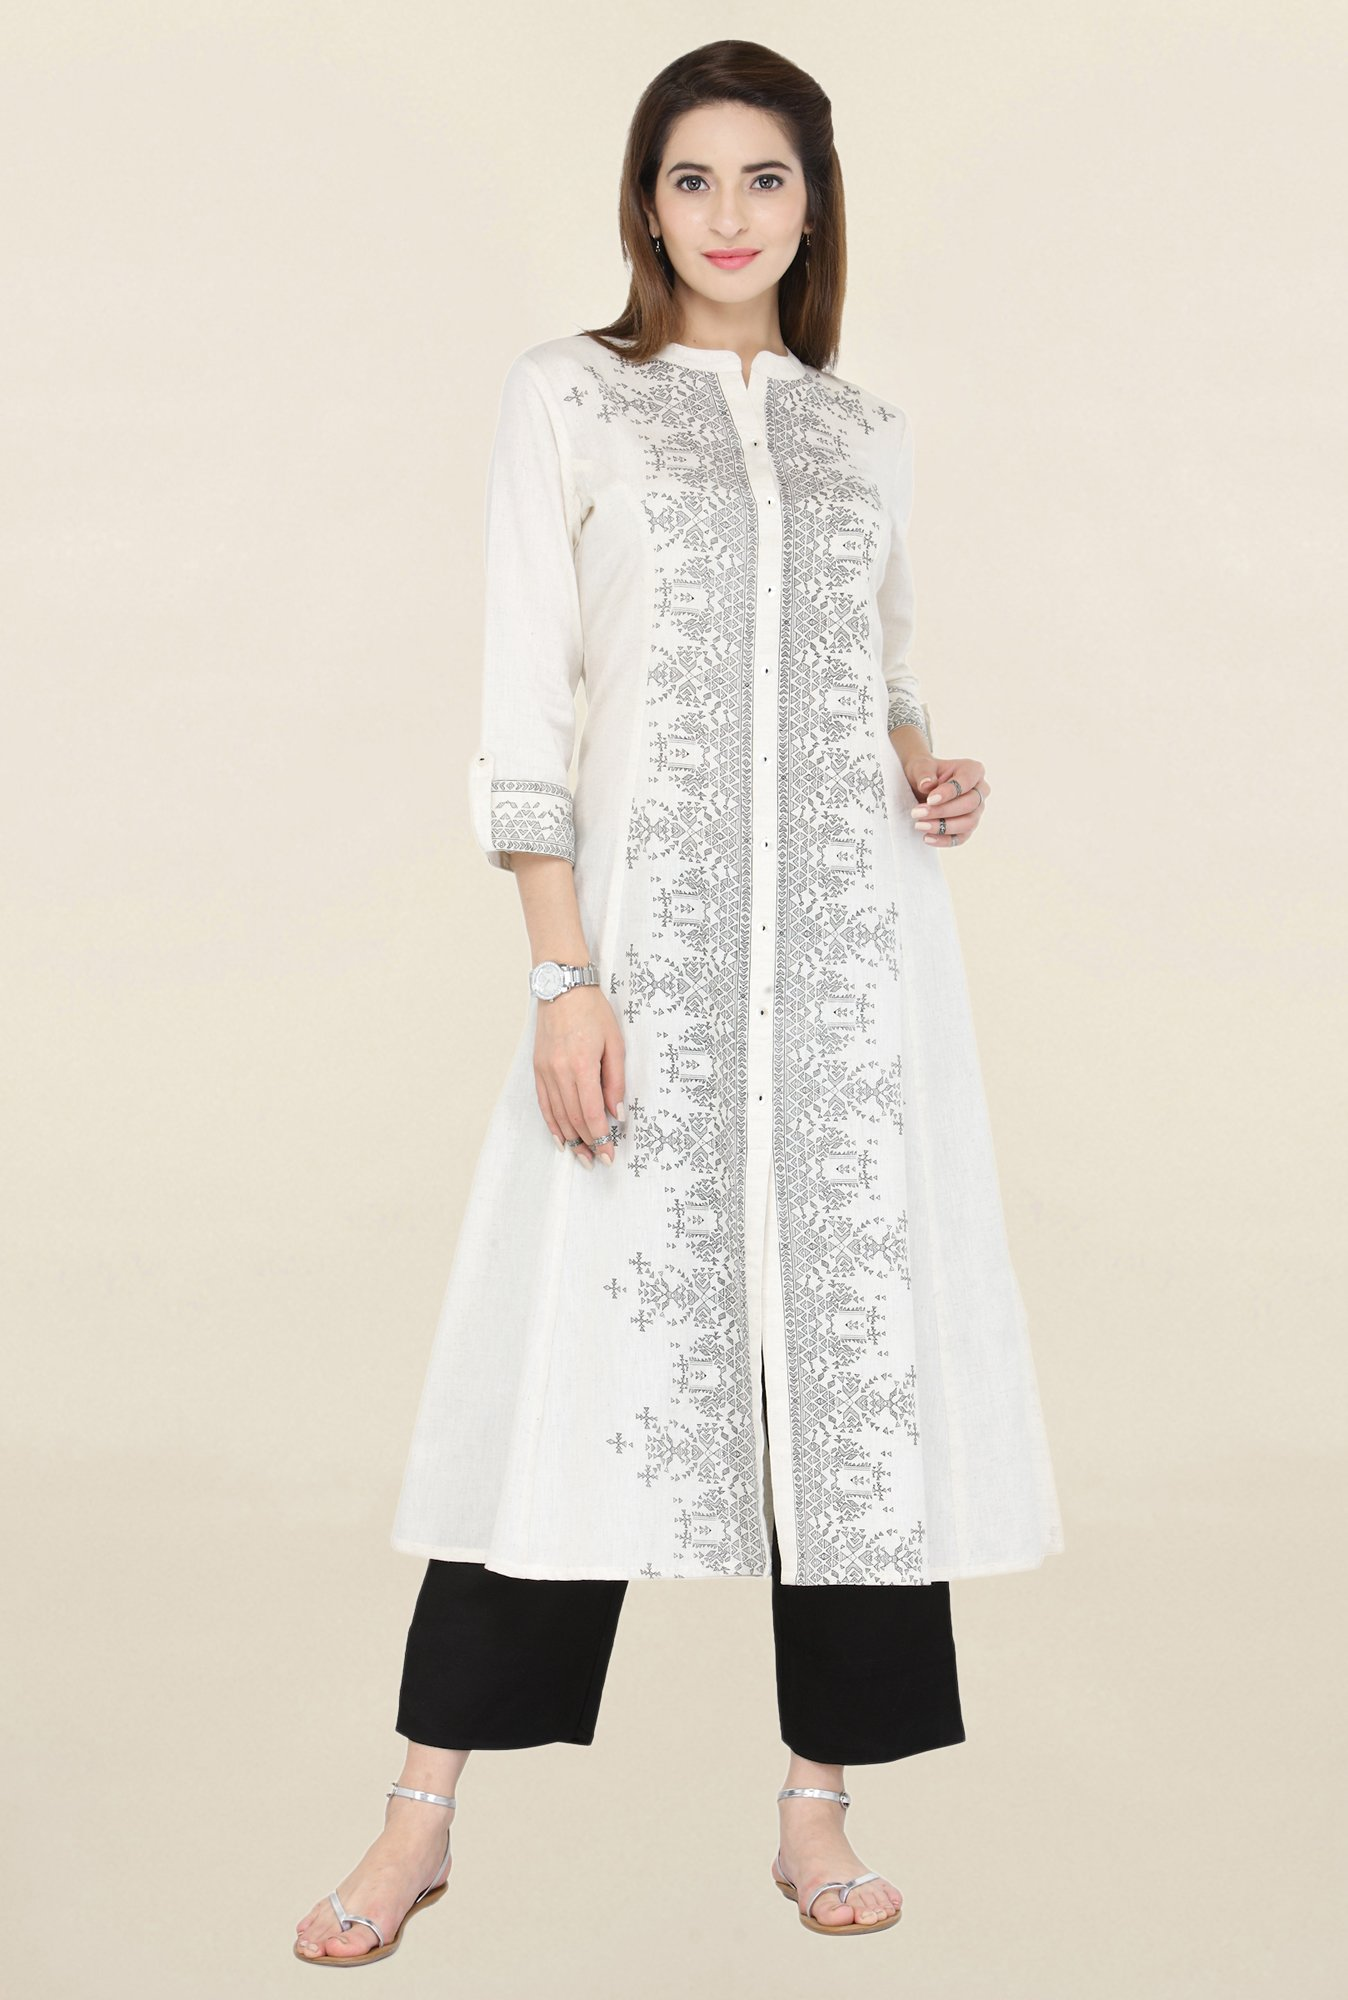 Varanga White & Black Printed Kurta With Pants